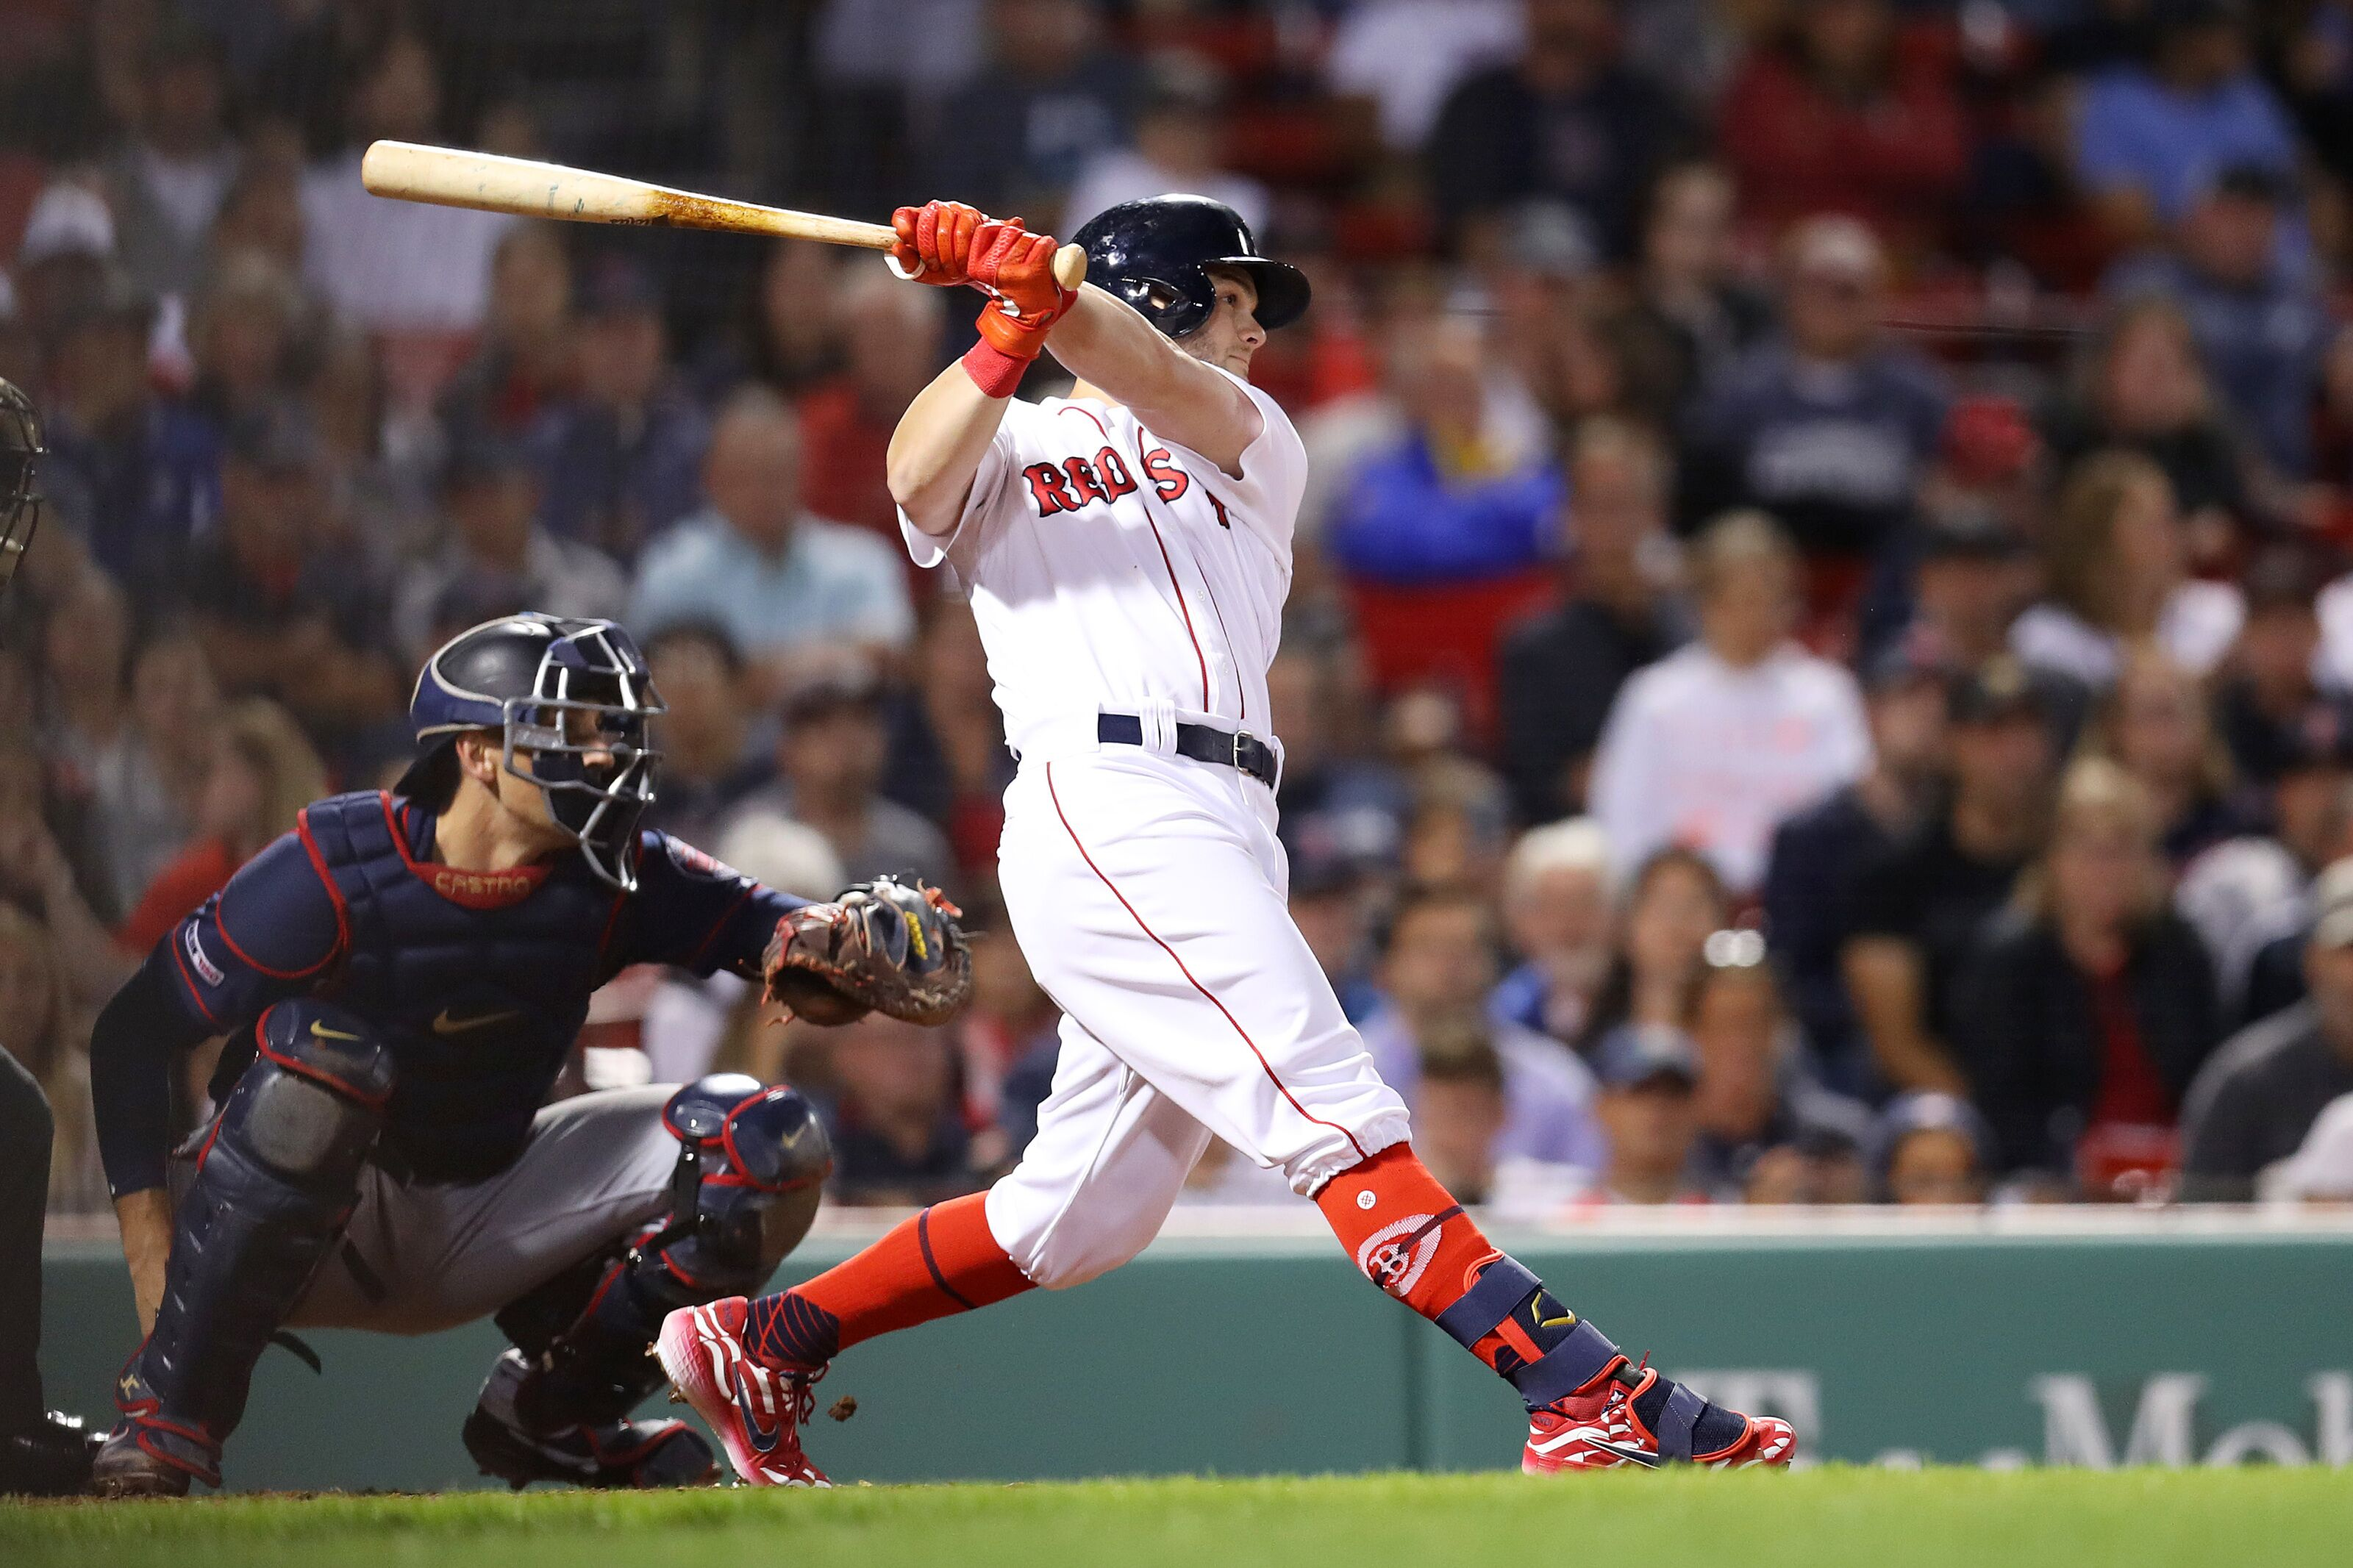 Red Sox: Where Andrew Benintendi should hit in 2020 lineup